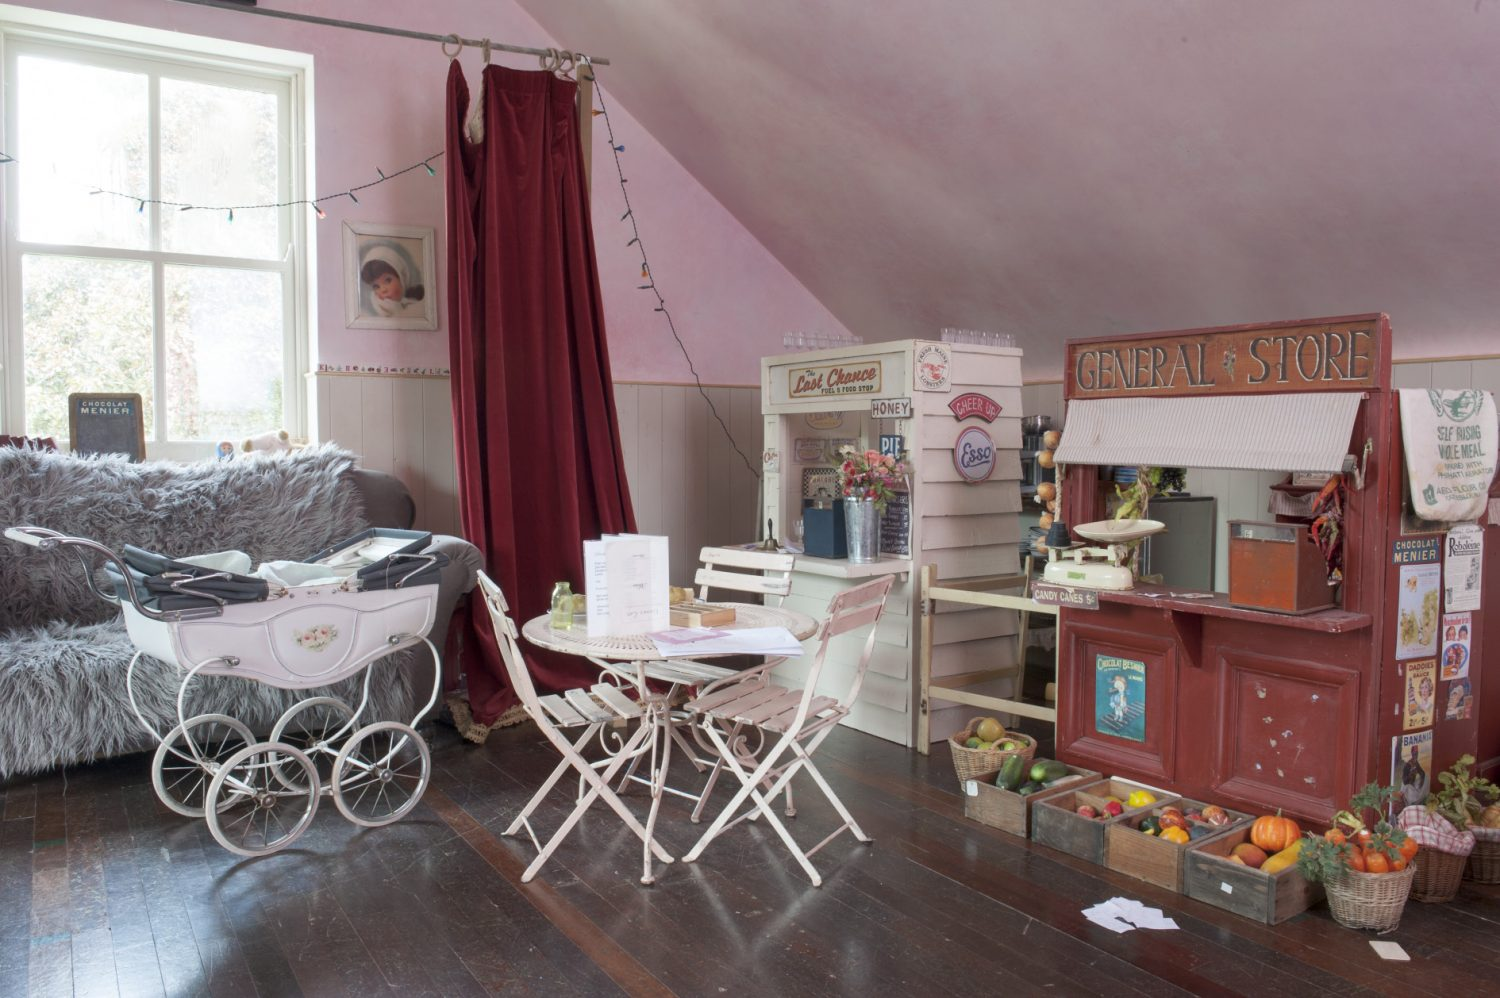 The doorway is draped with theatrical swagged red velvet curtains. Inside, a painted wooden café kiosk and kitchen, a general store and a post office have been carefully crafted and painted by the couple for their three children to play with